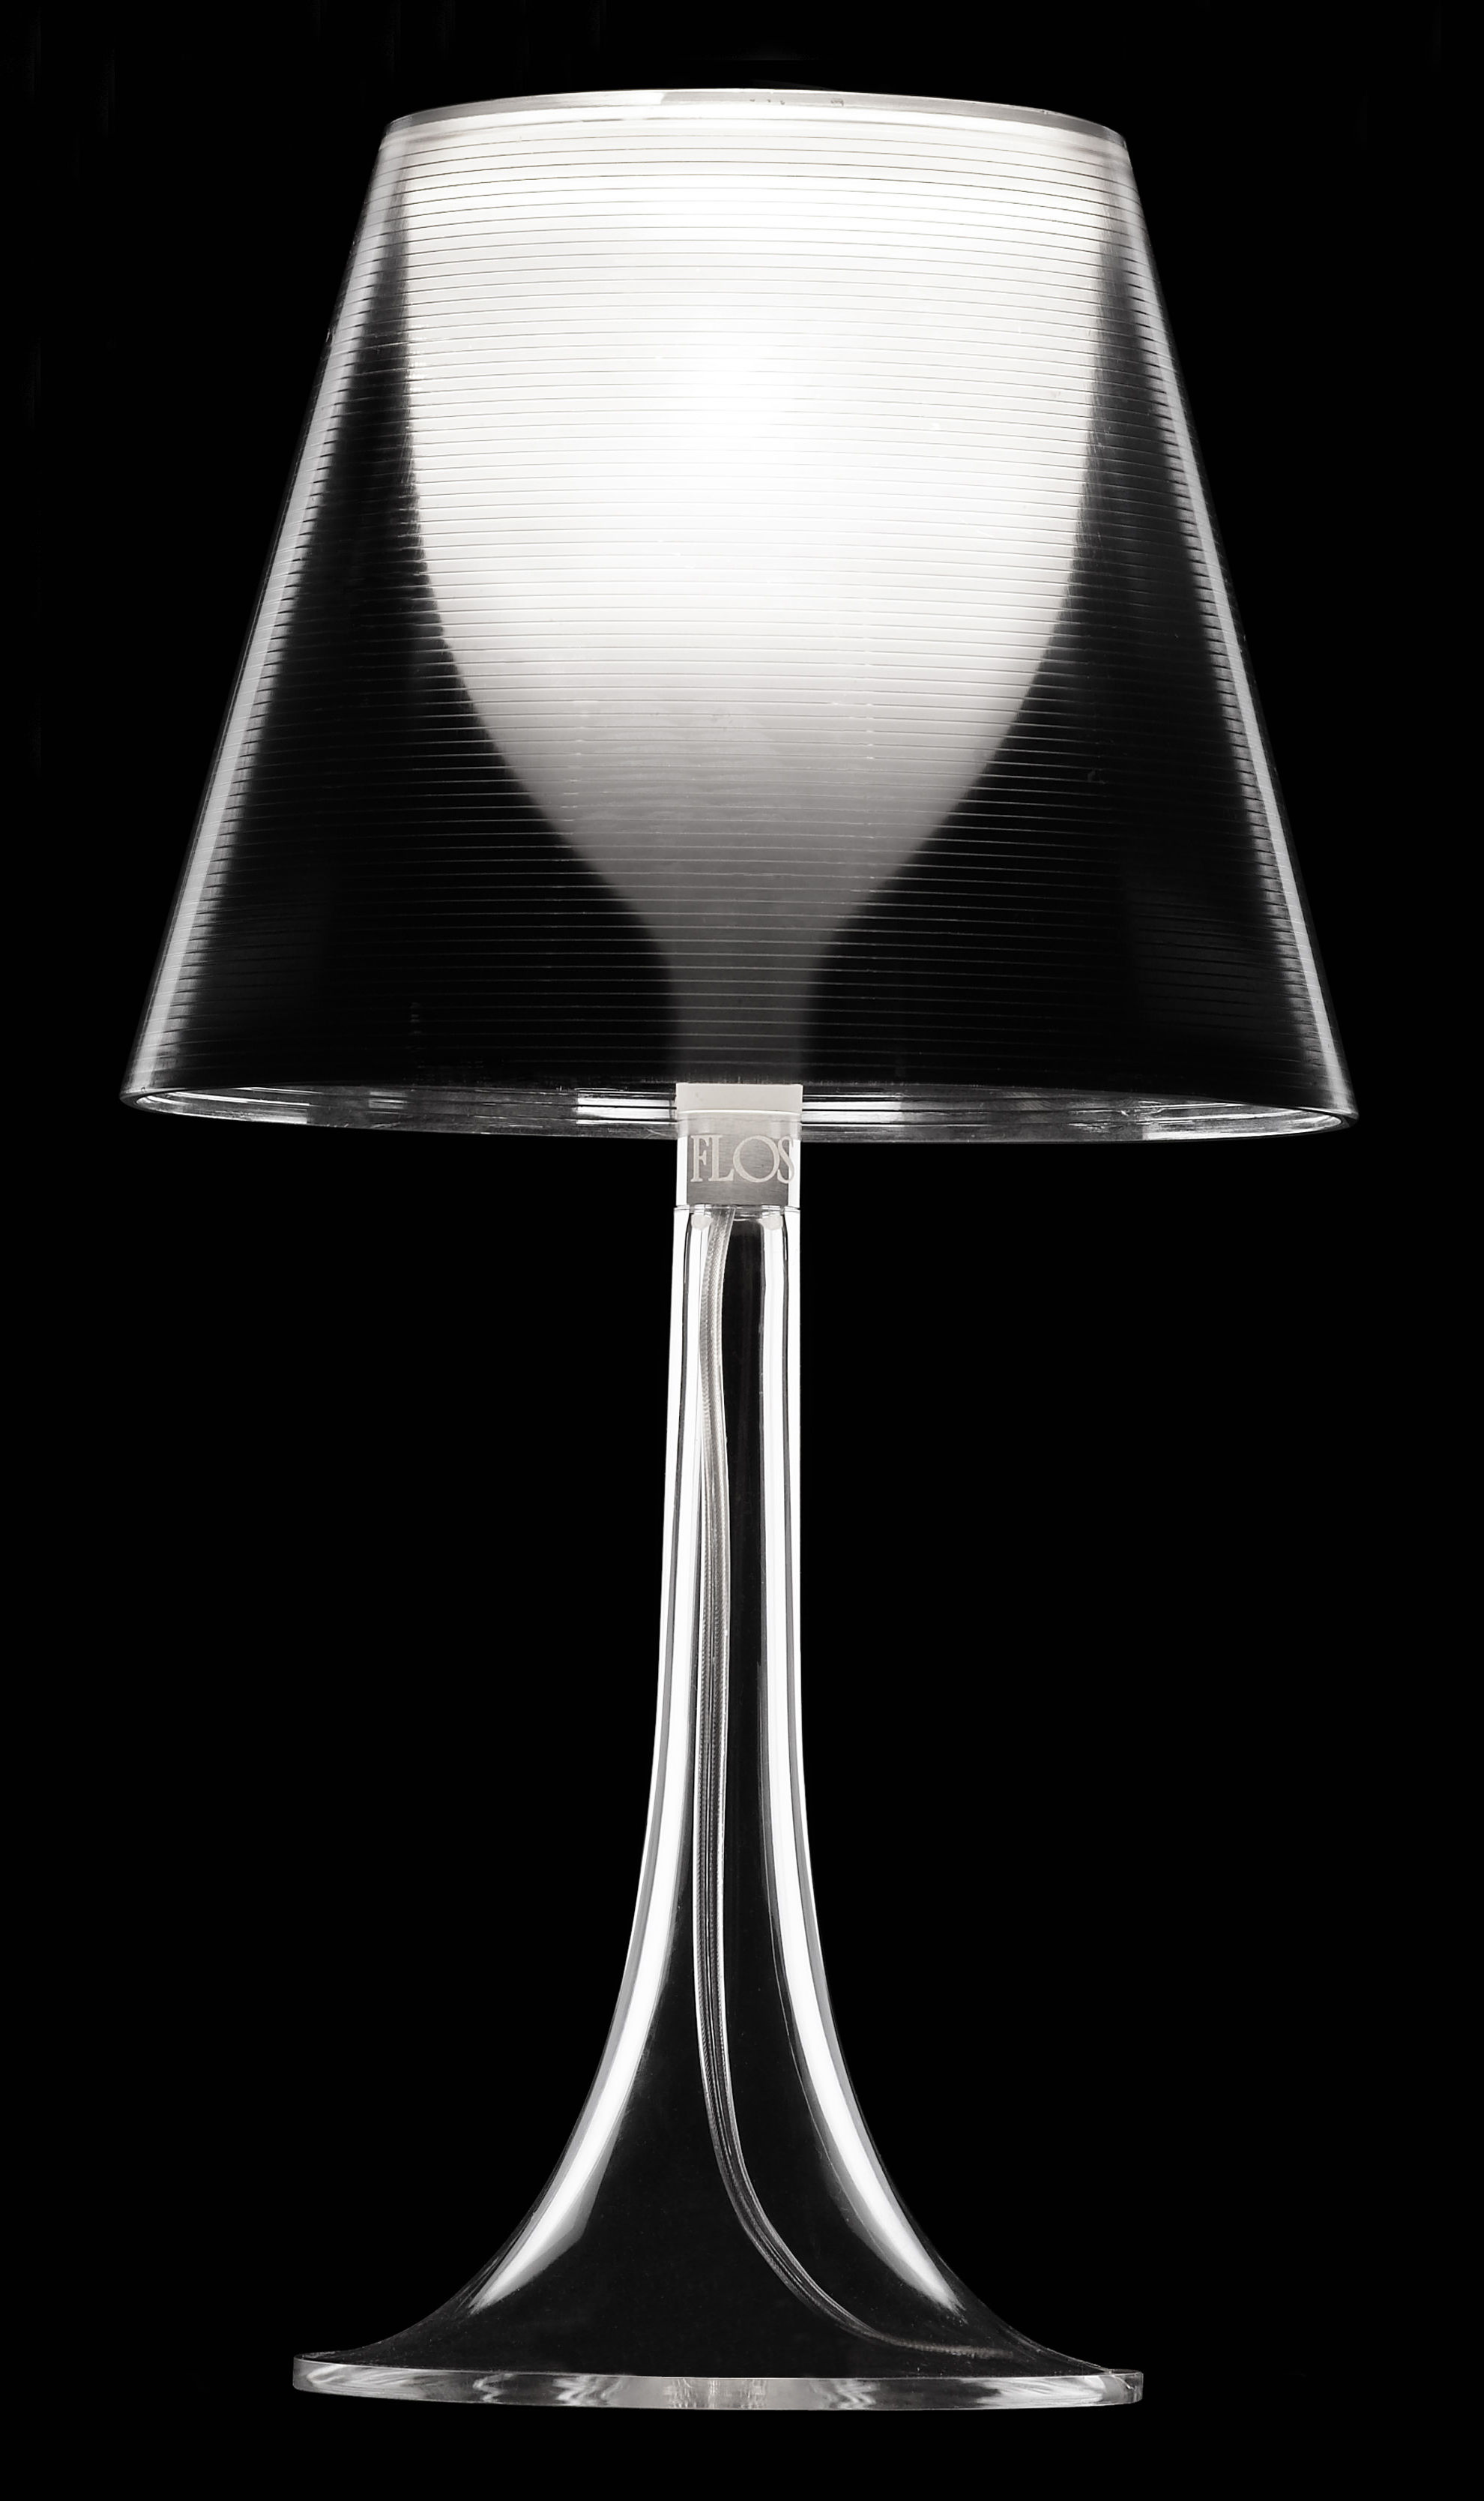 Starck Lampe Lampe De Table Miss K Argent - Flos